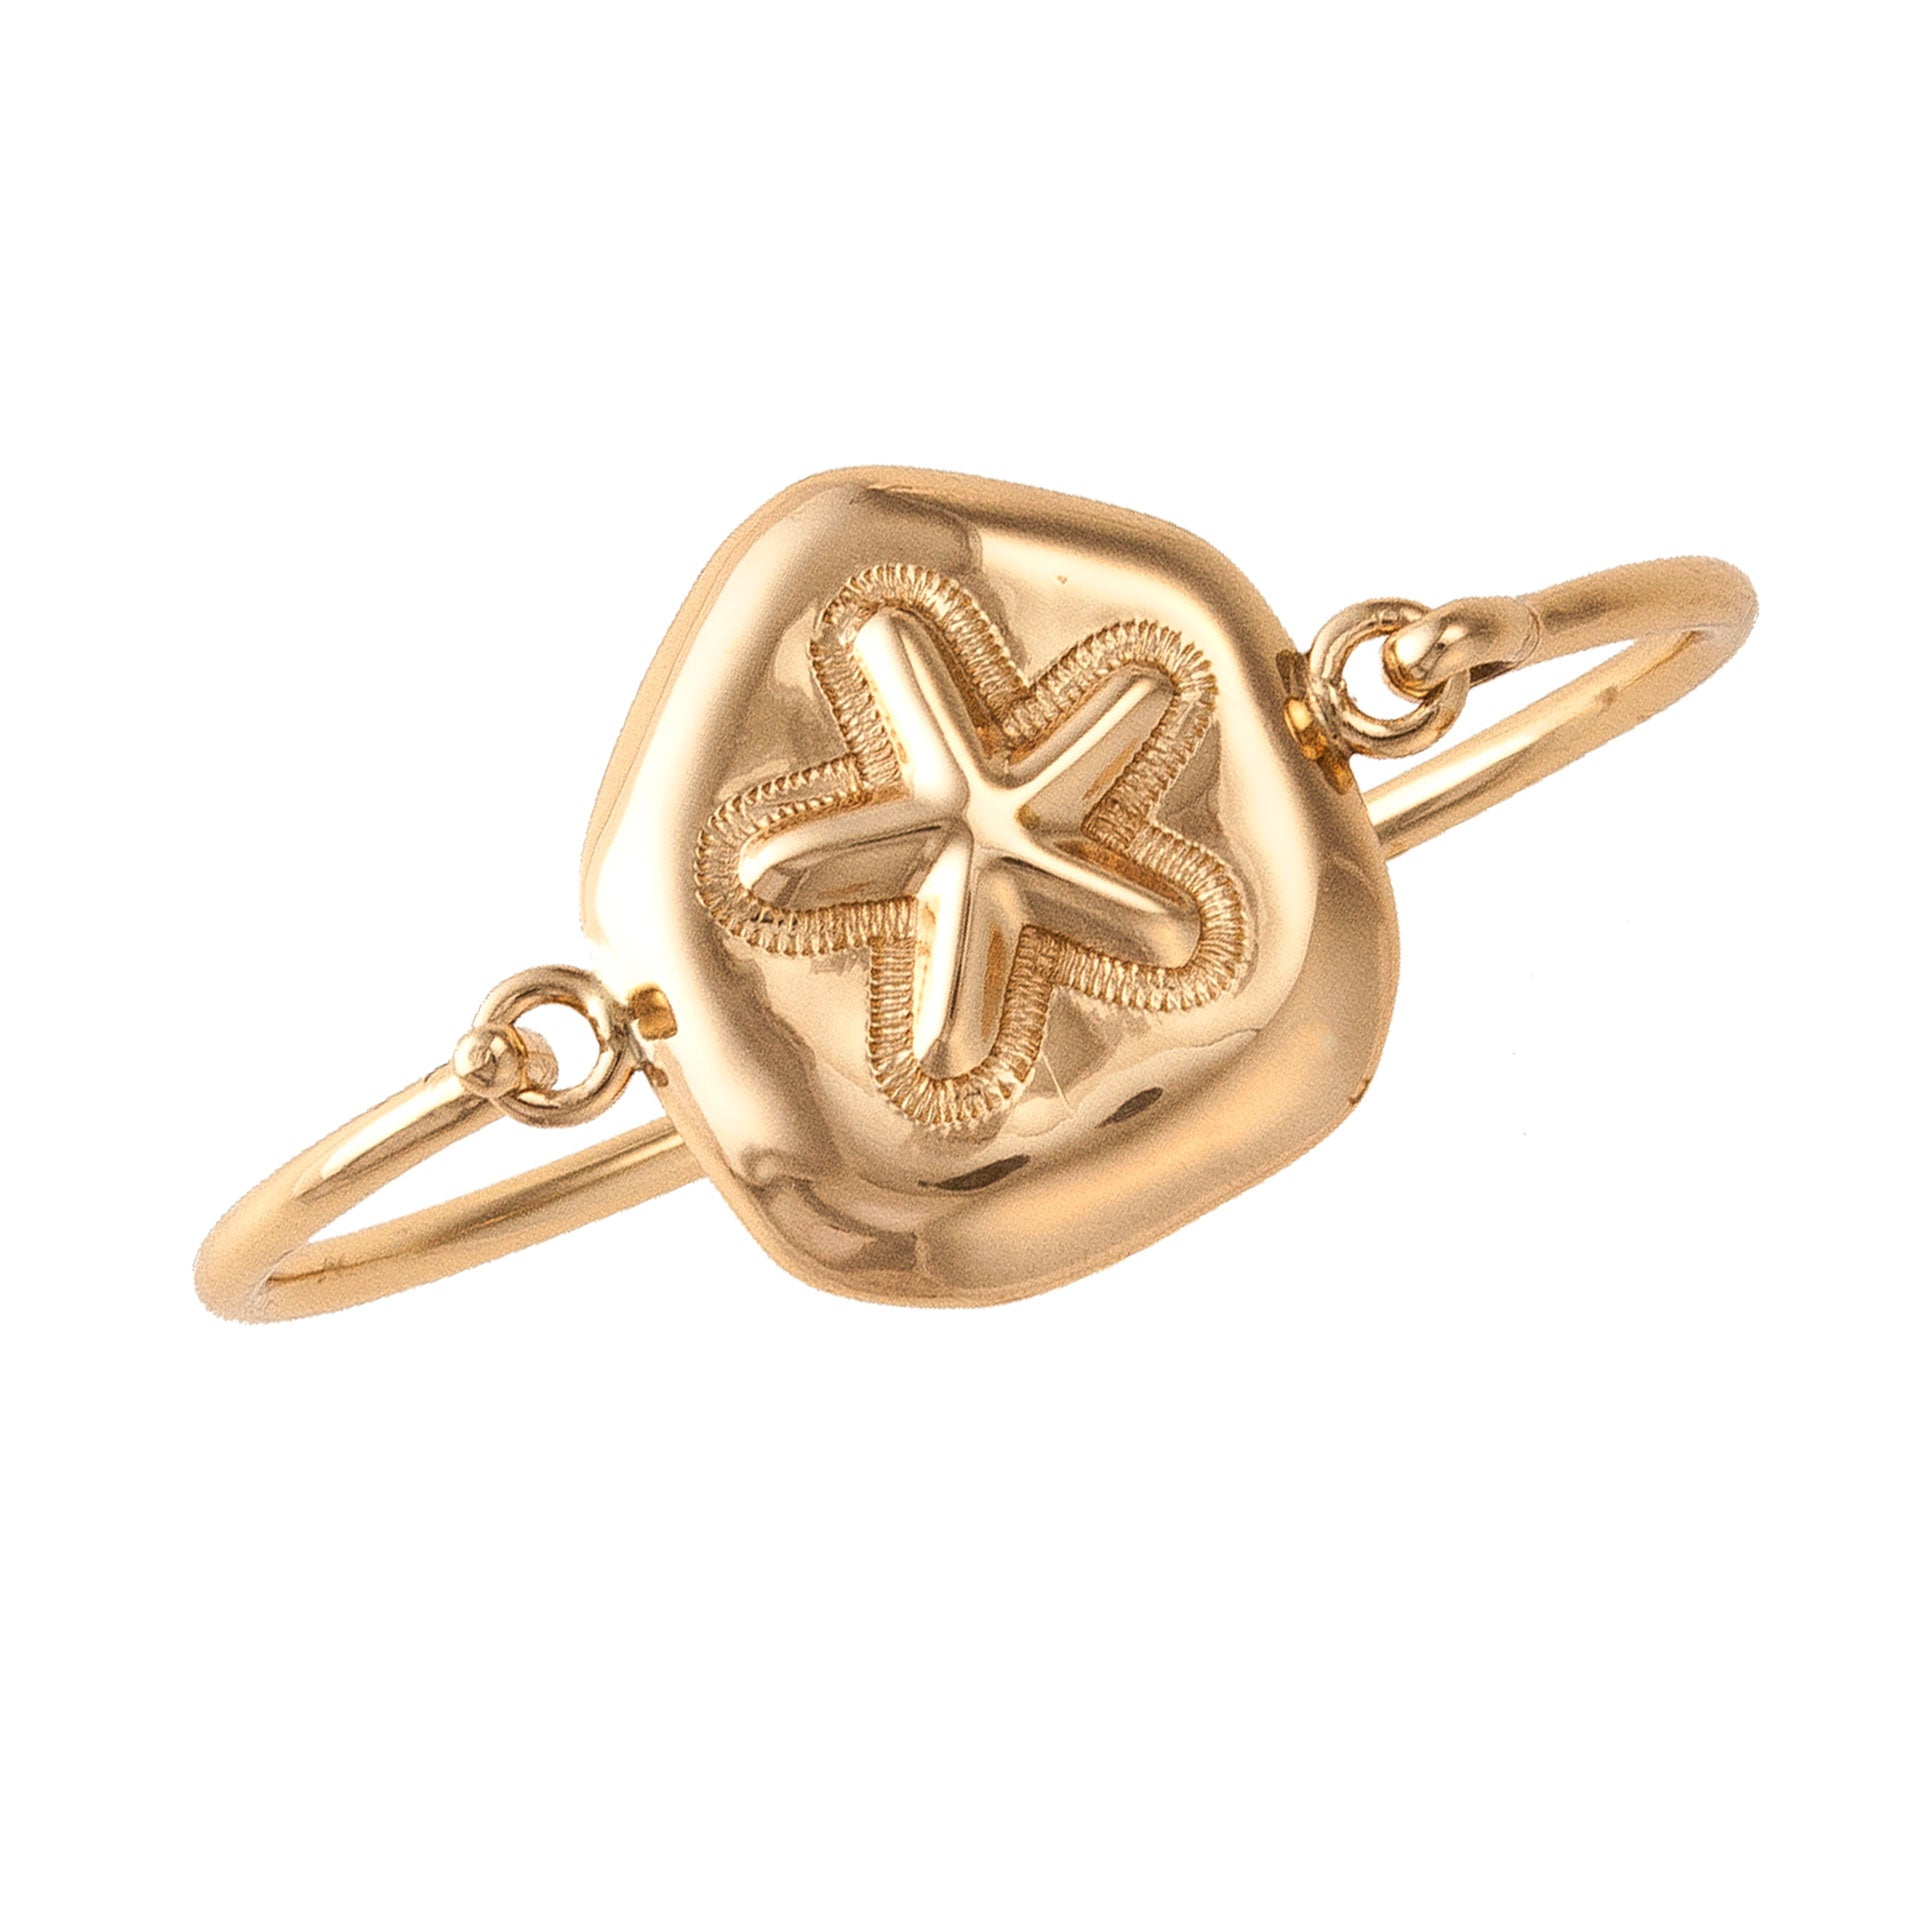 Alchemia Sand Dollar Bangle | Charles Albert Jewelry